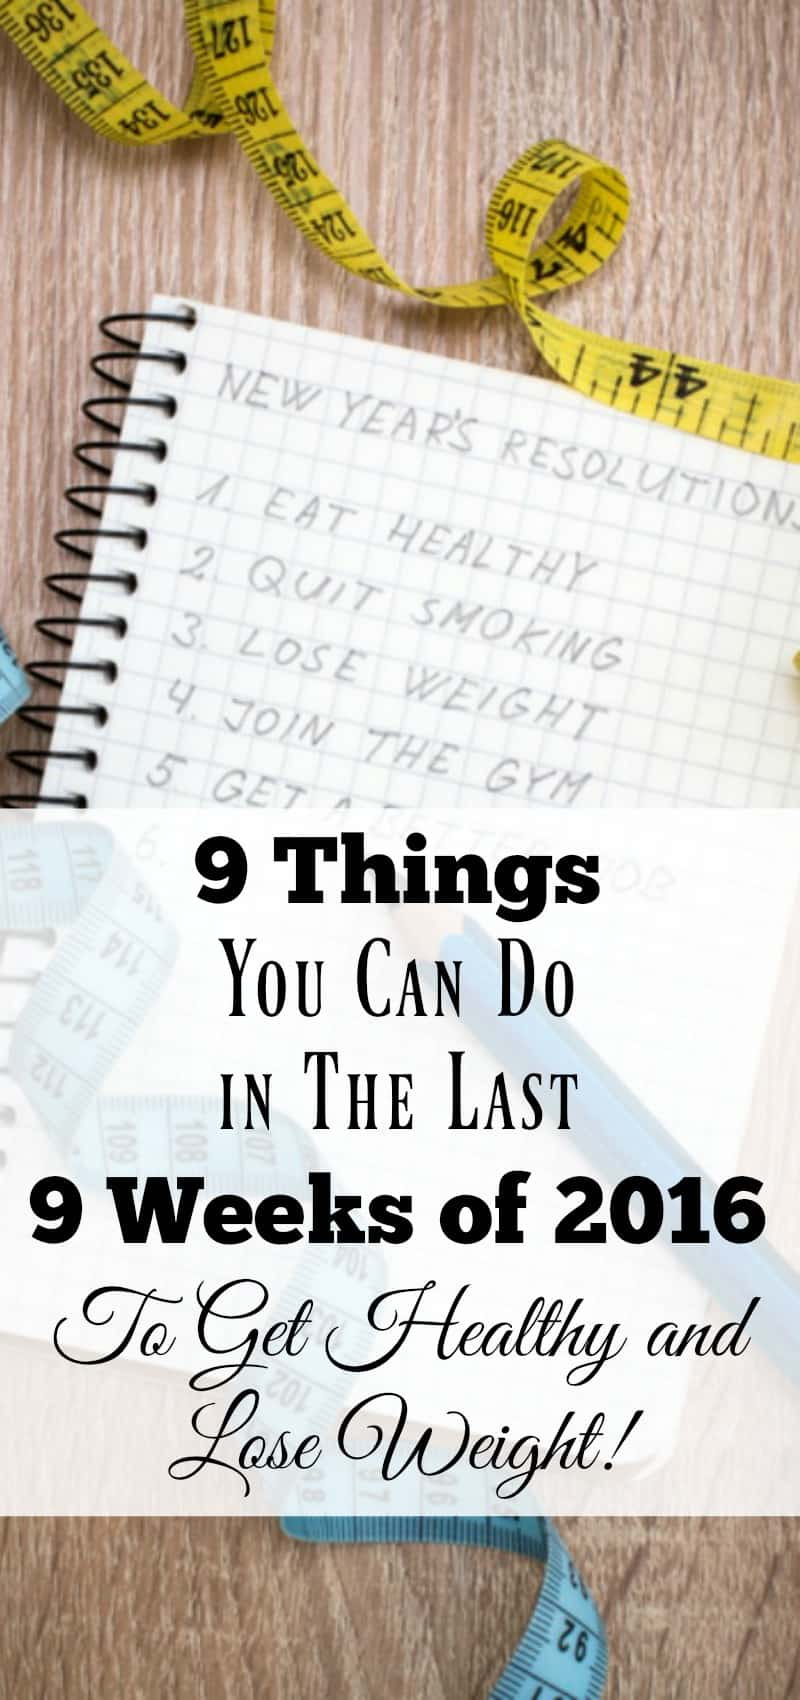 9 Things You Can Do In The Last 9 Weeks of 2016 to Get Healthy and Lose Weight